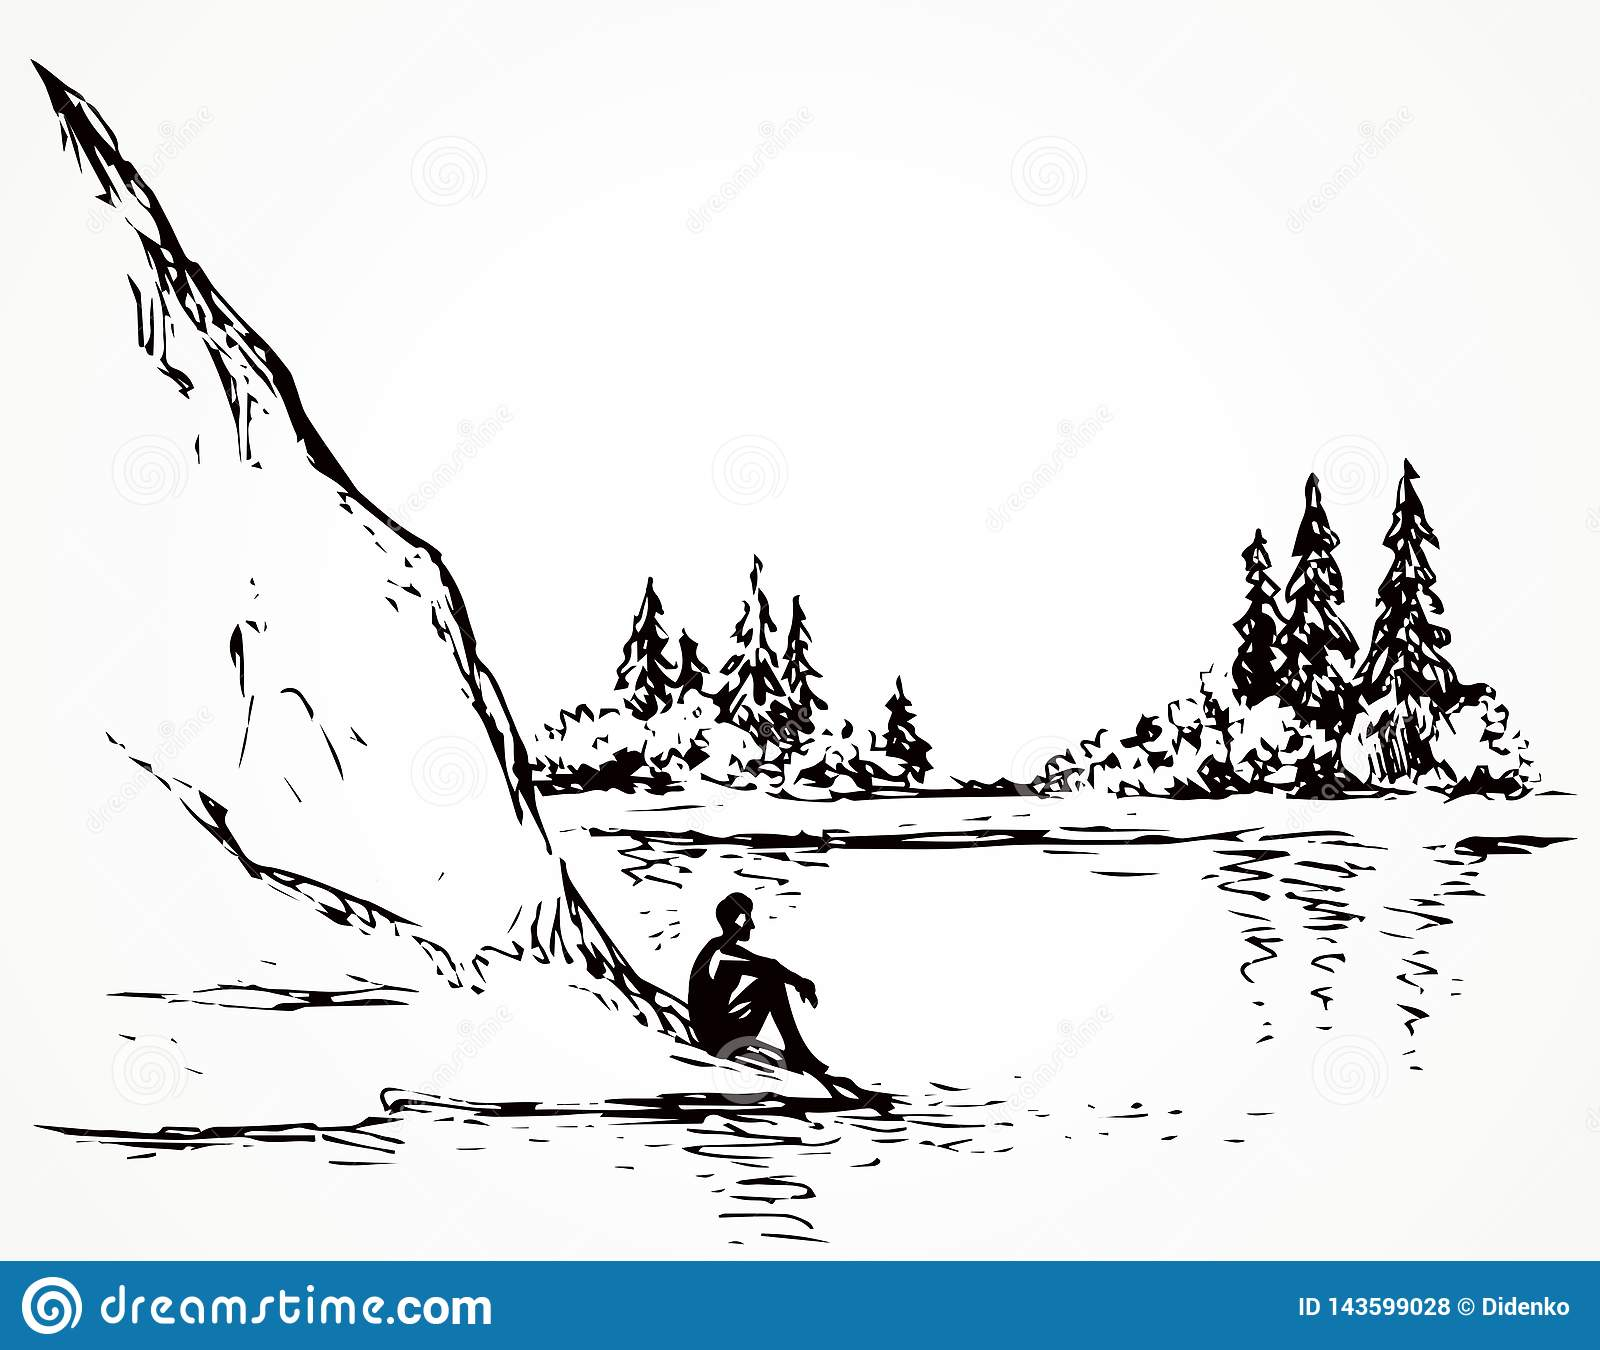 firs on hill above river vector drawing stock vector illustration of hand happy 143599028 https www dreamstime com firs hill above river vector drawing cliff calm remote alps scene high riverbank line black ink hand drawn sad lone young girl image143599028